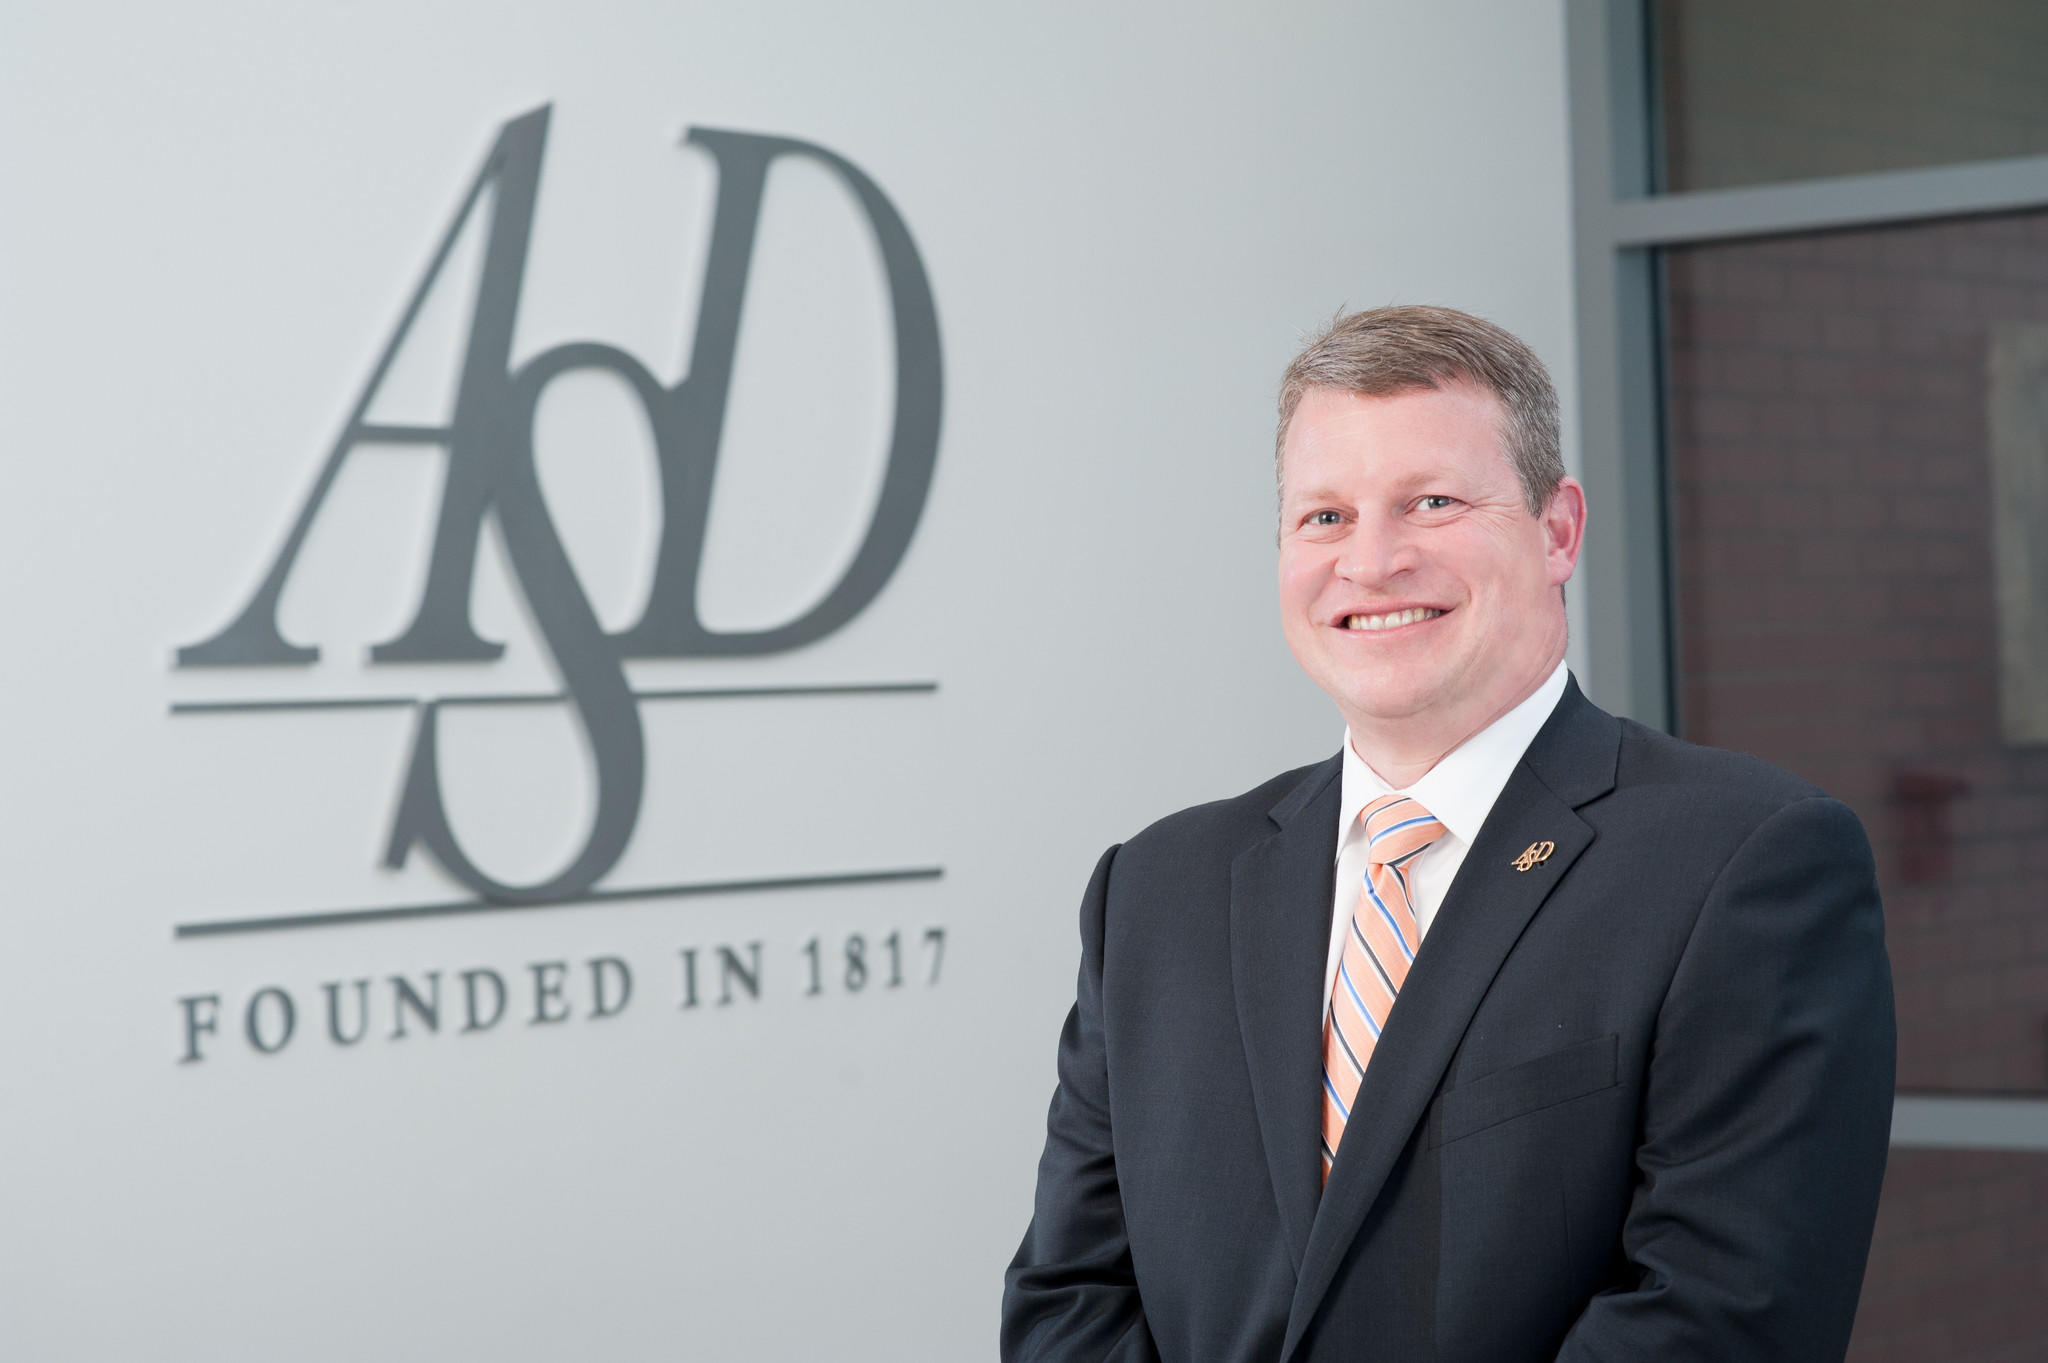 Newly named ASD Executive Director of Jeffrey S. Bravin.